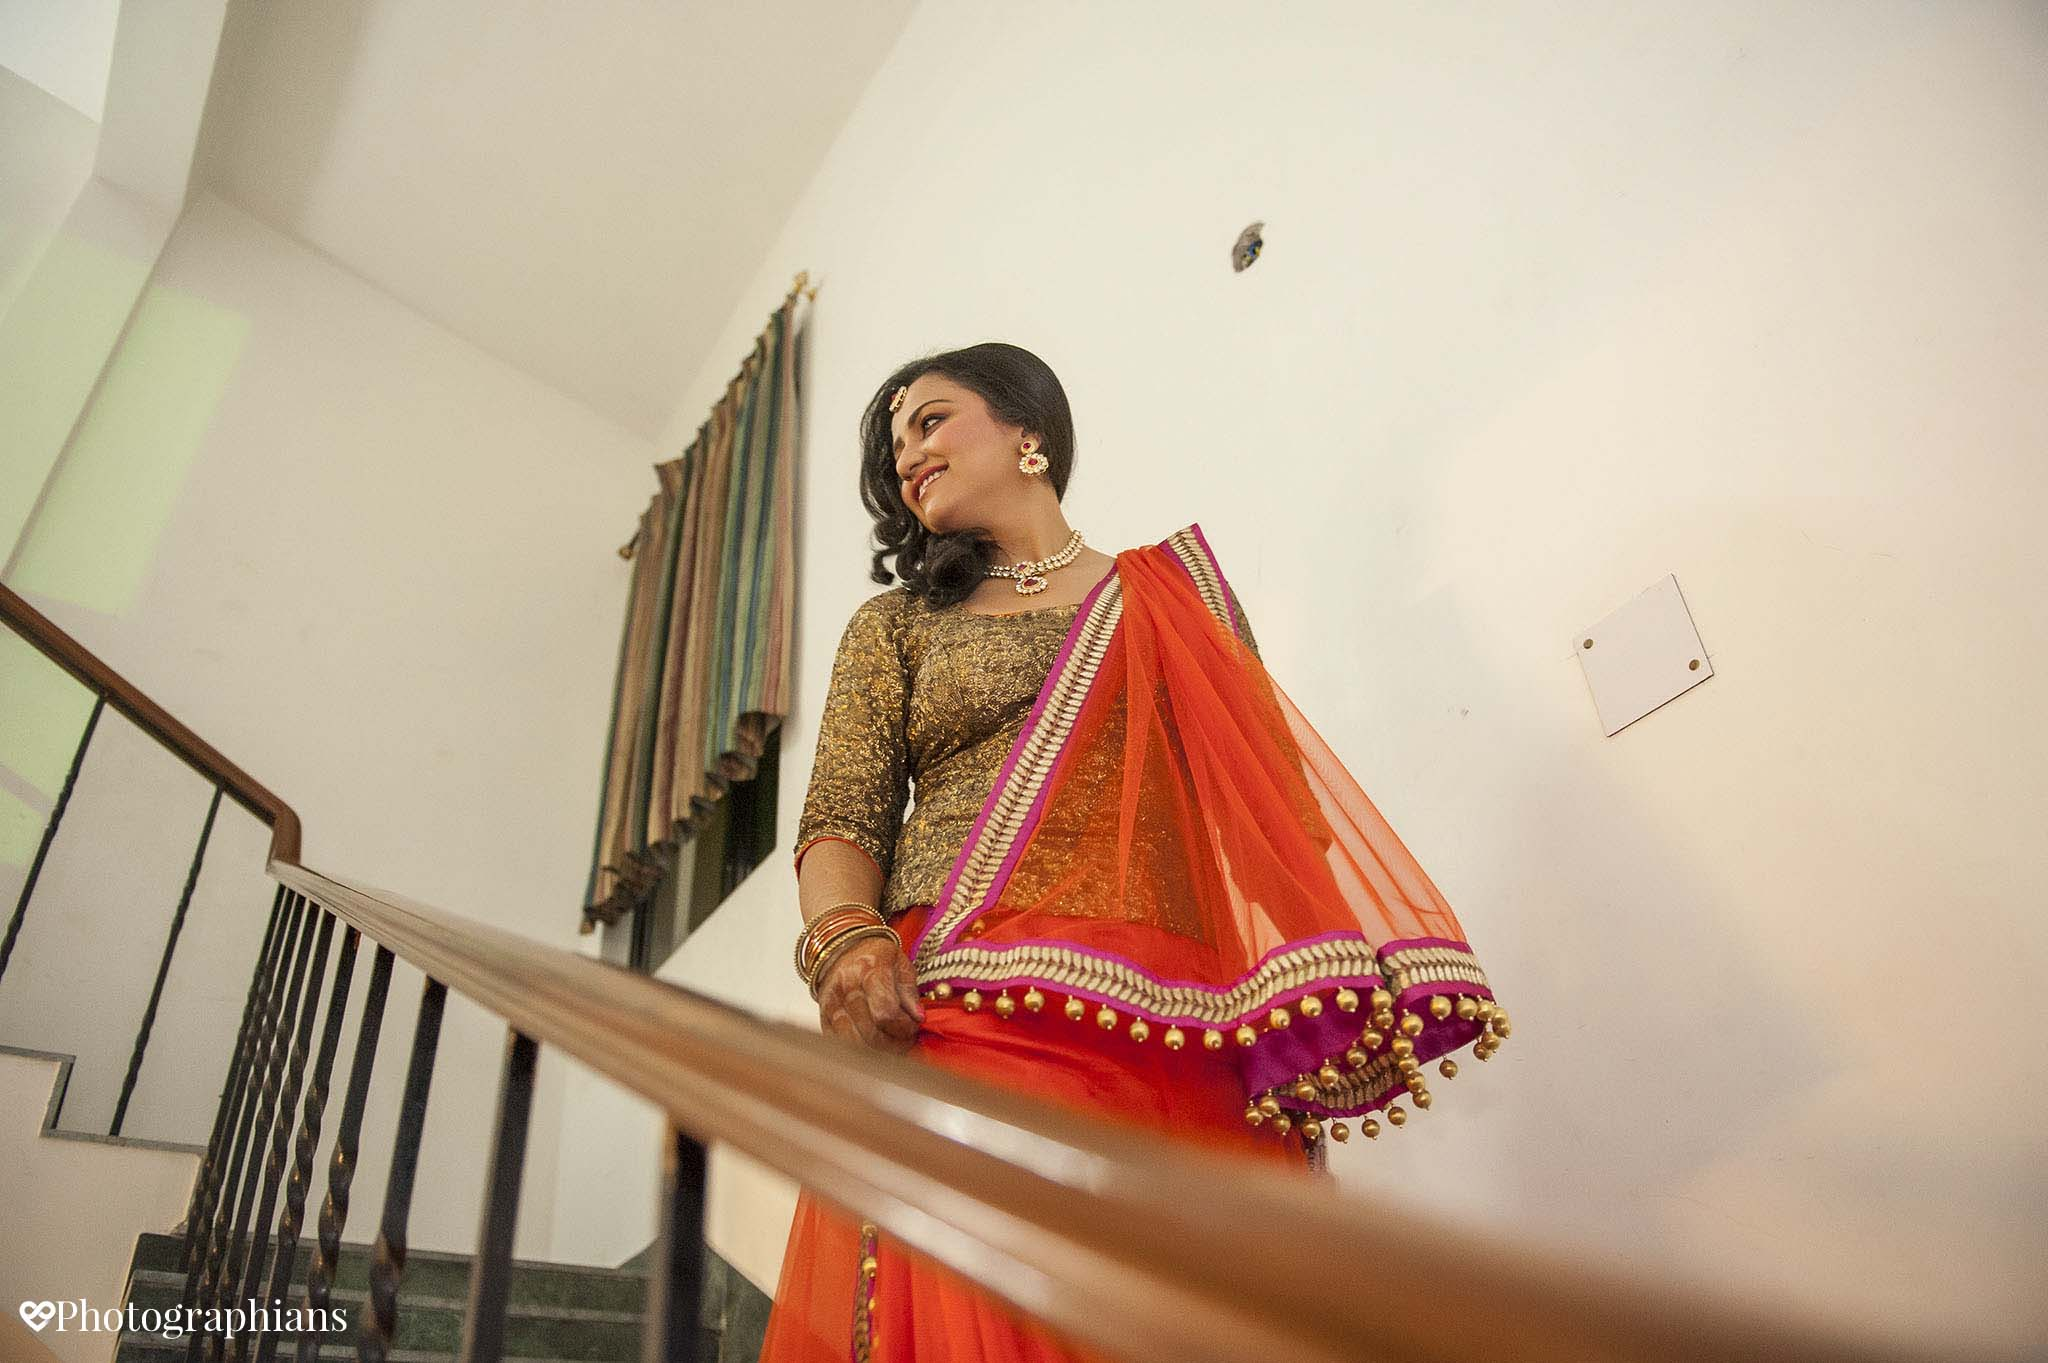 Photographians_Indian_Destination_Wedding_094